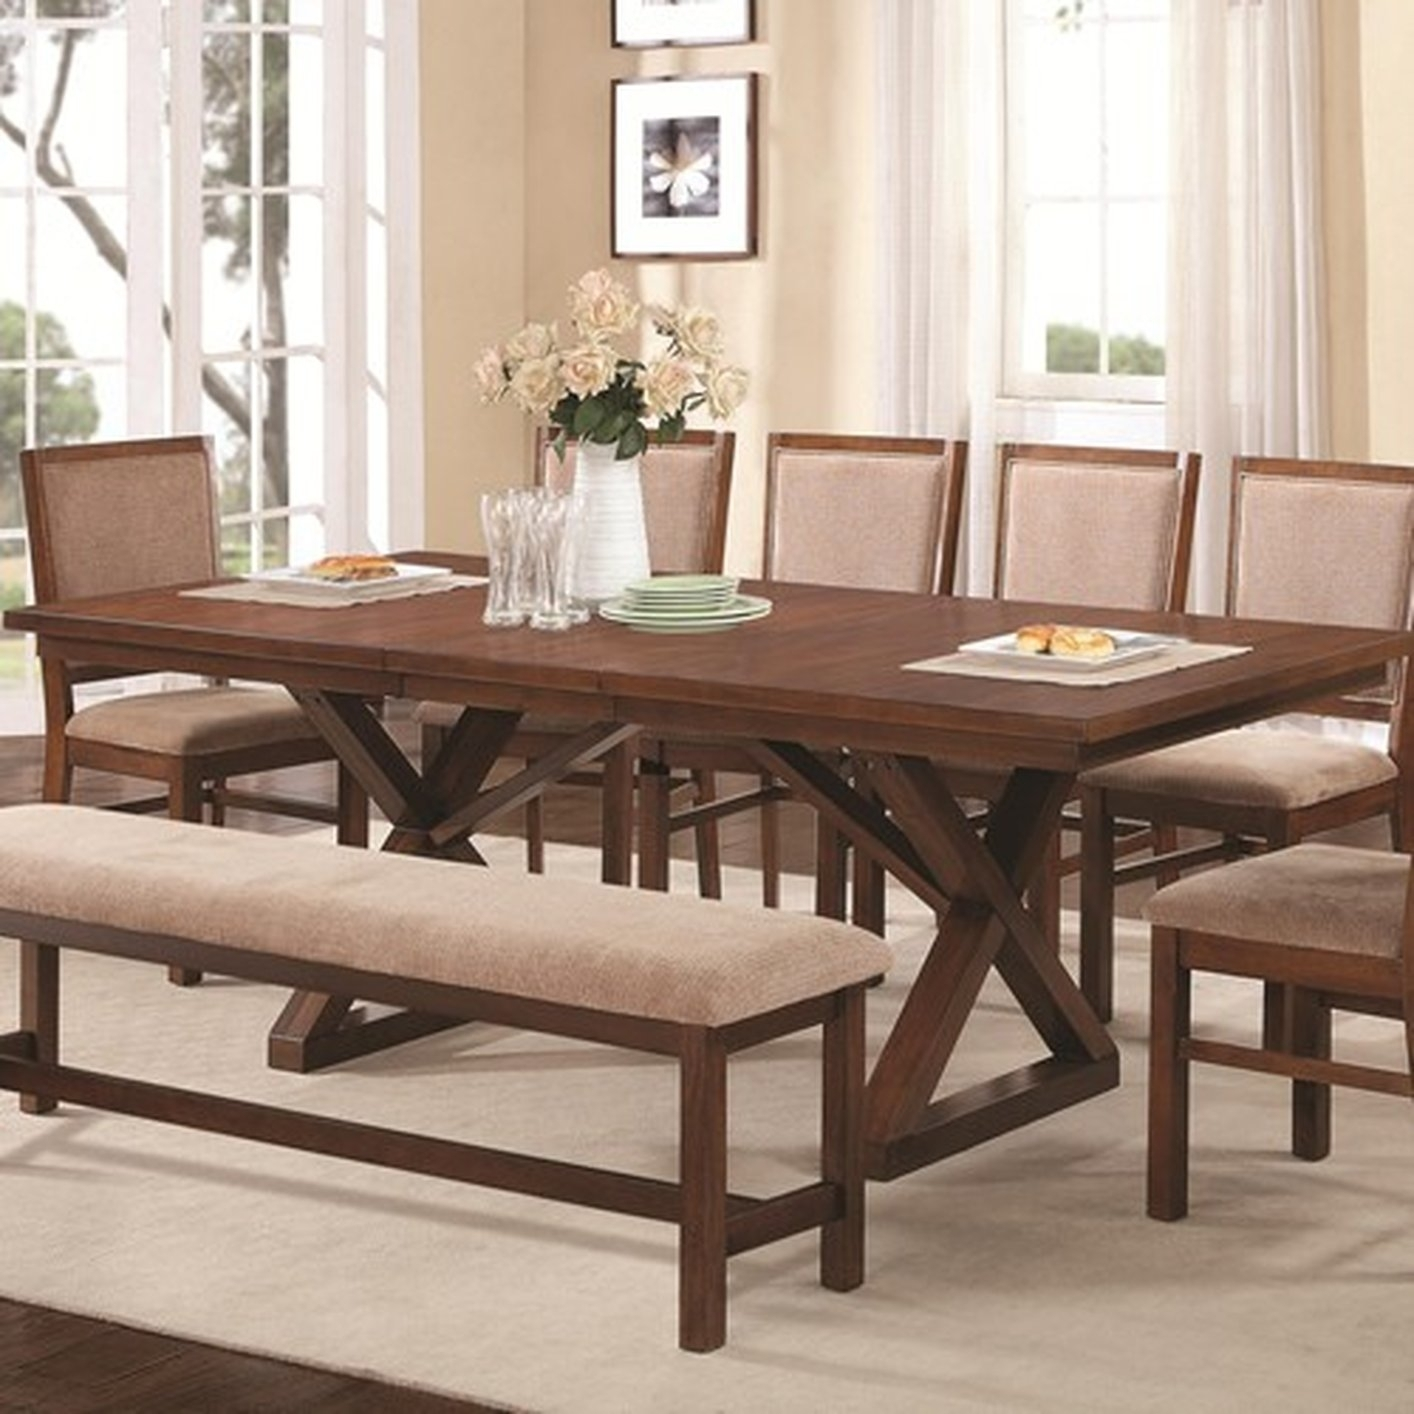 Brown Wood Dining Table – Steal A Sofa Furniture Outlet Los Angeles Ca With Regard To Sofa Chairs With Dining Table (Image 3 of 10)